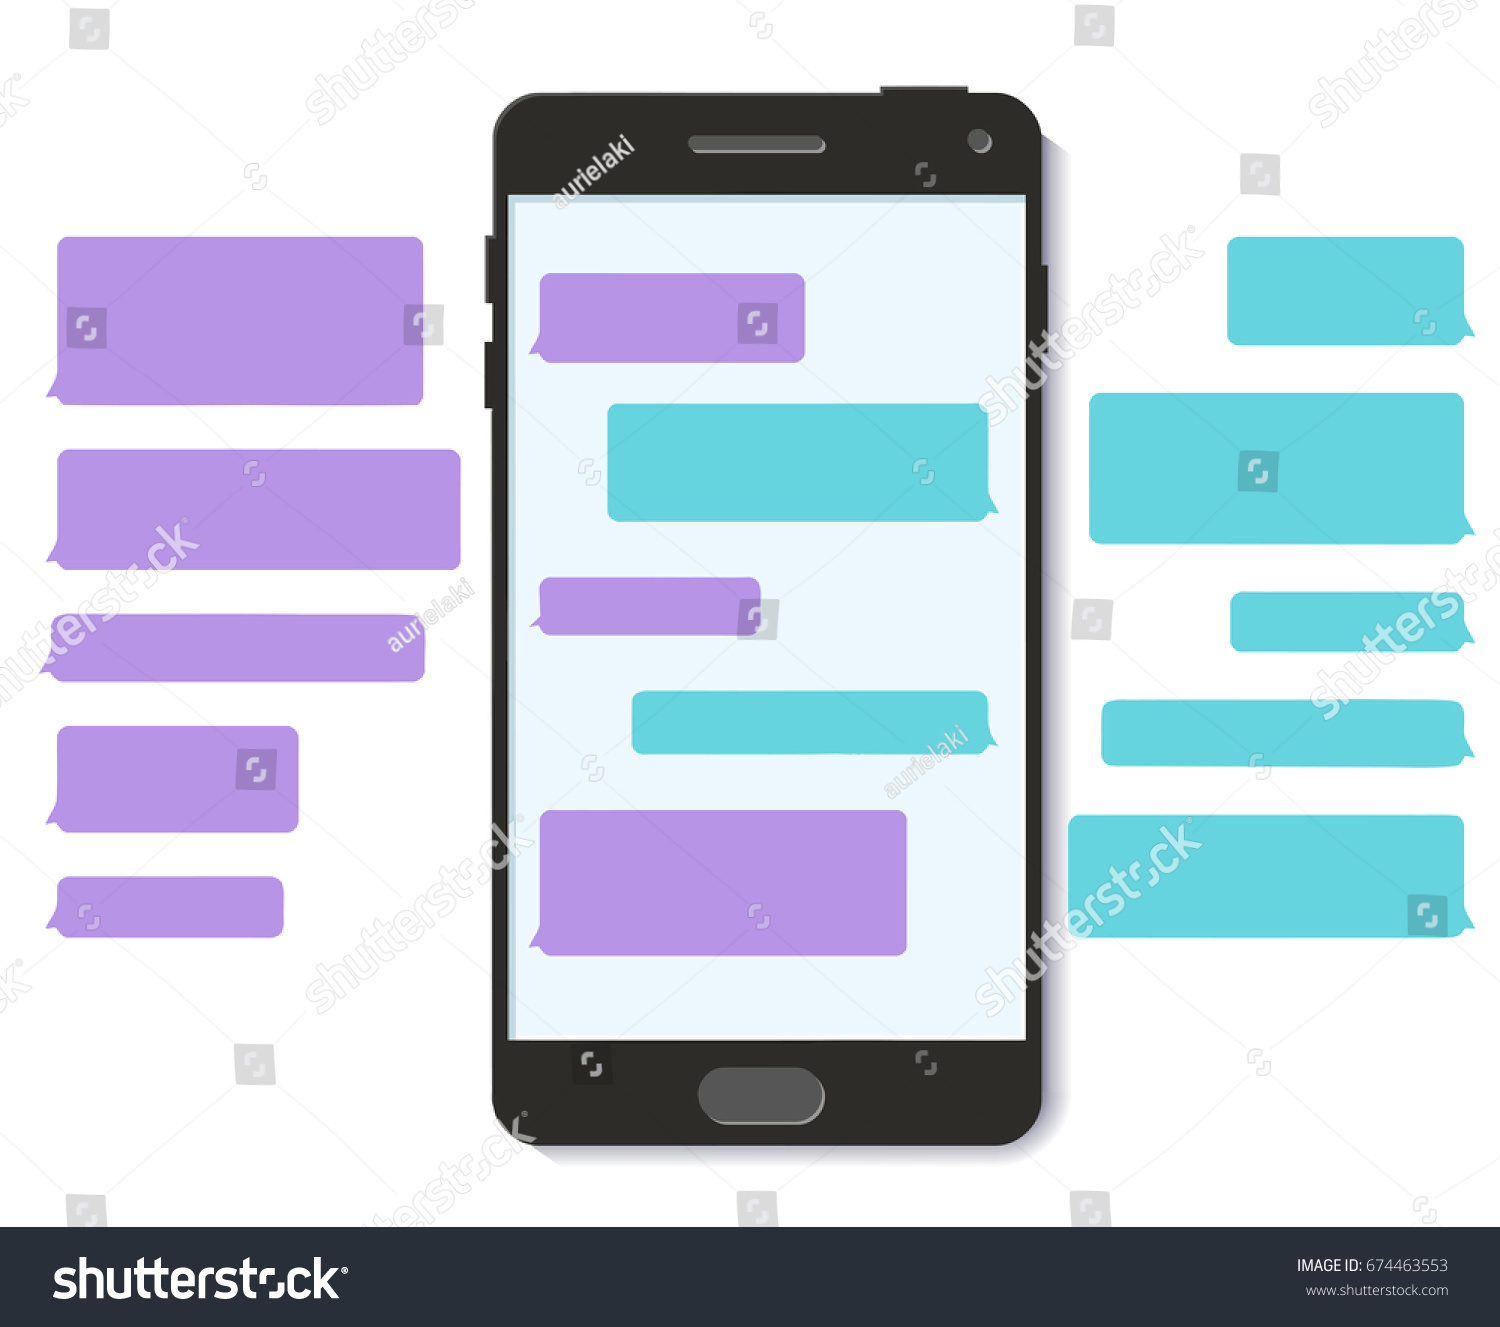 Chatbot chat text message bubble template stock illustration chatbot chat text message bubble template 3d flat mobile interface illustration maxwellsz